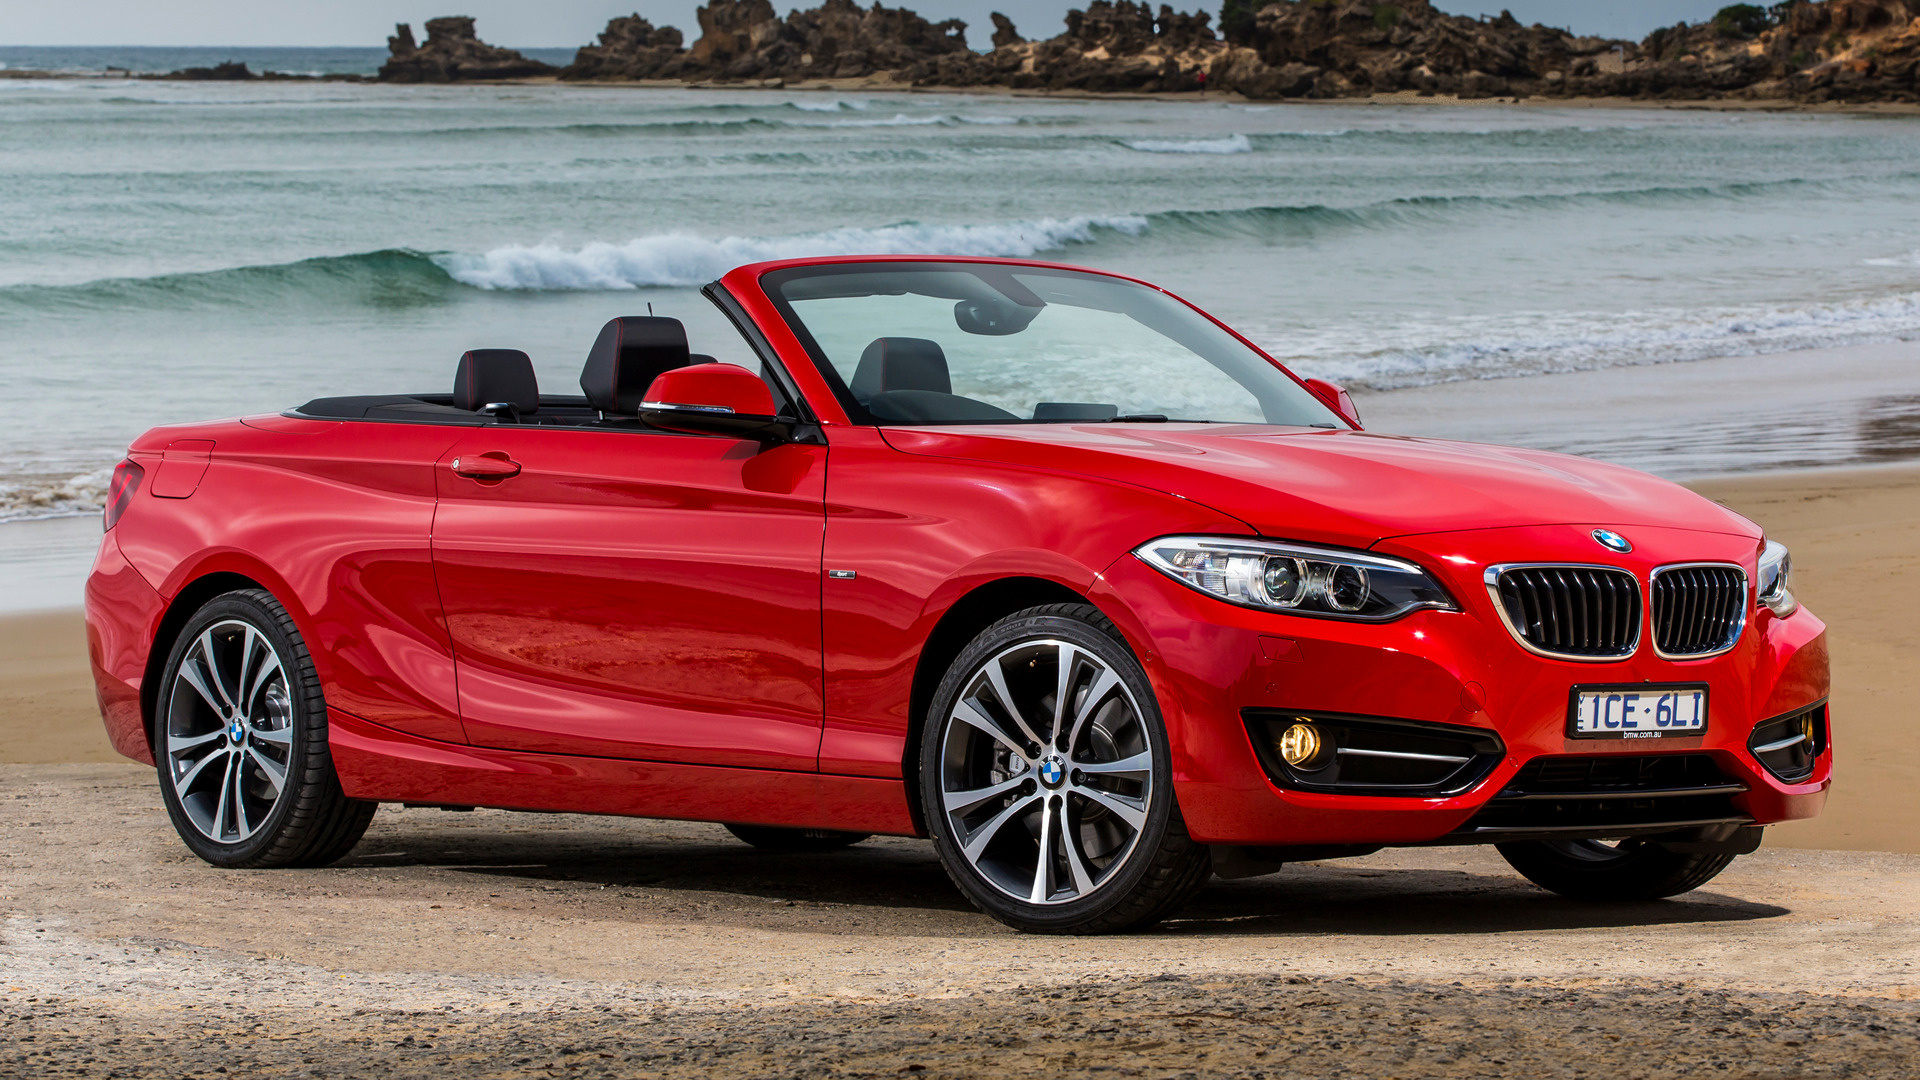 2015 Bmw 2 Series Convertible Au Wallpapers And Hd